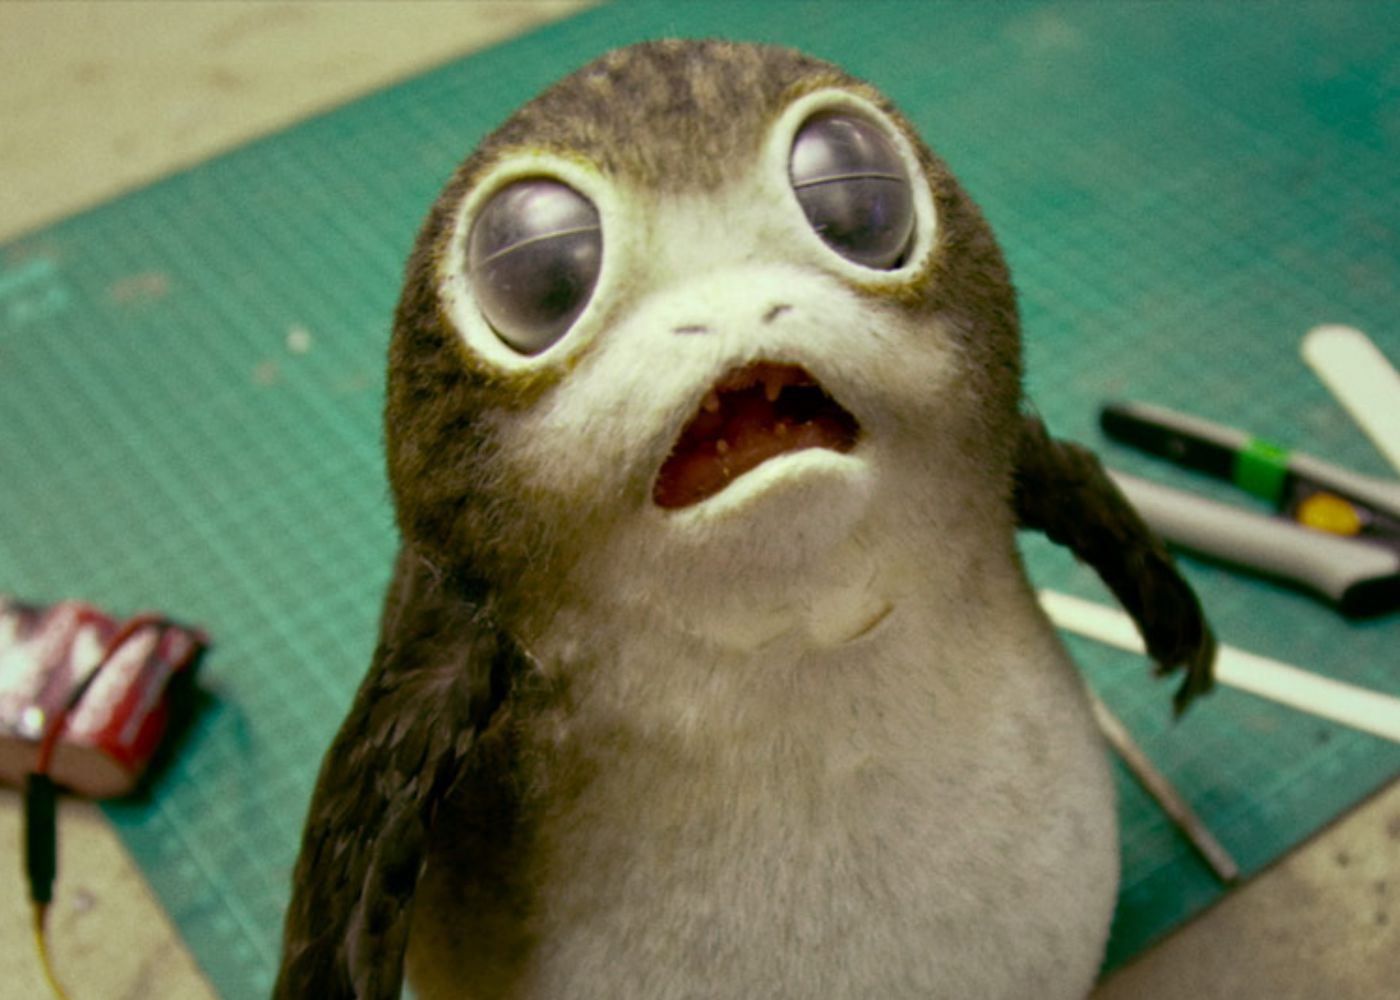 New, Adorable Creatures Revealed for Star Wars: The Last Jedi